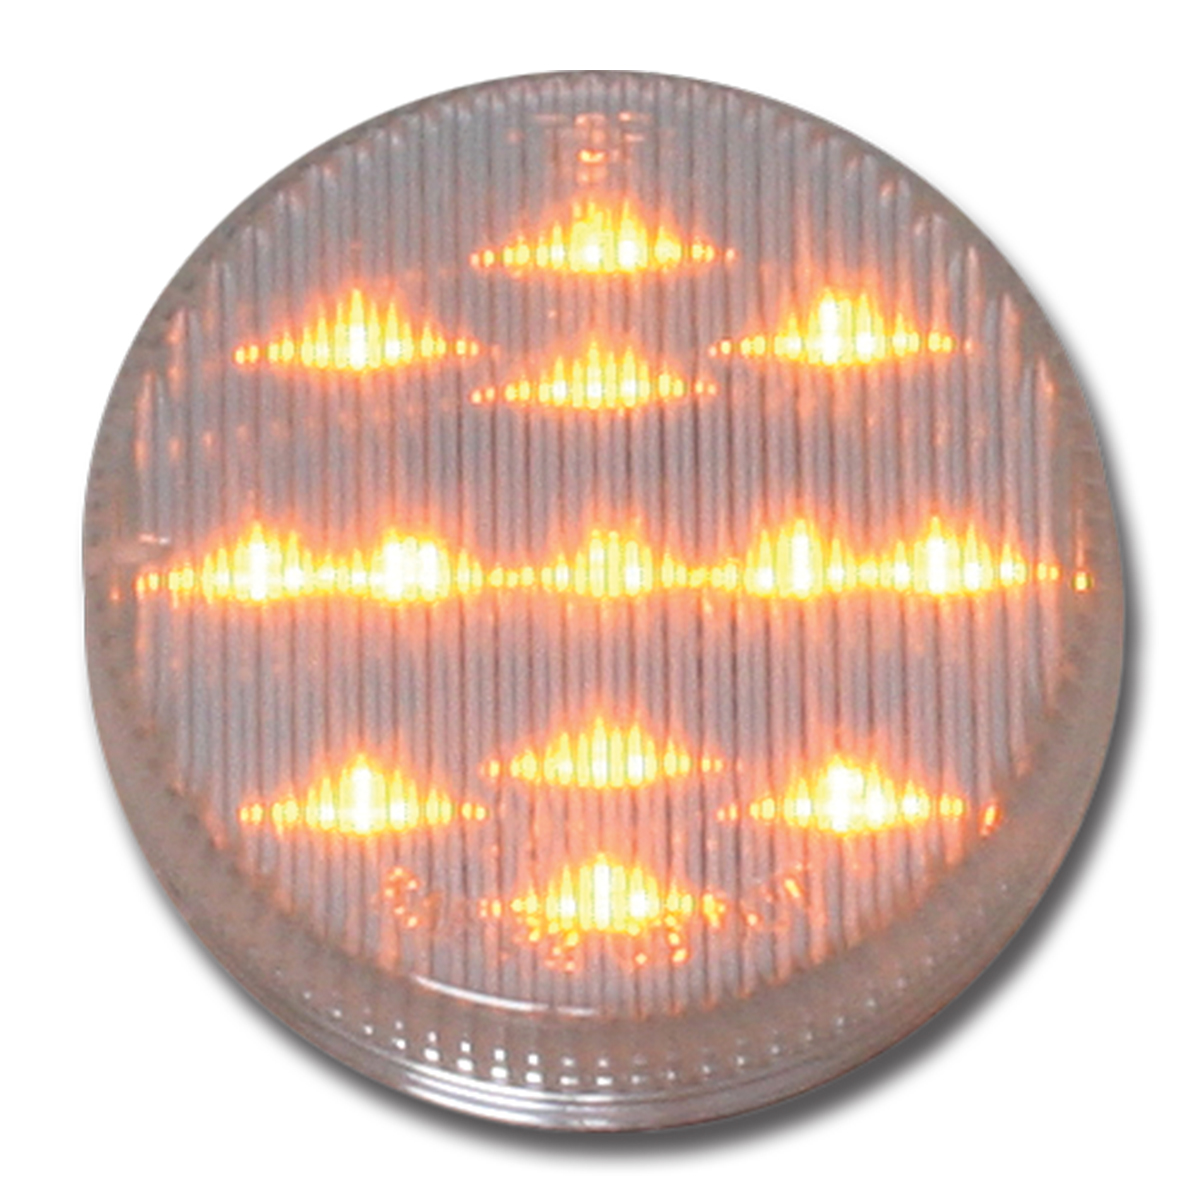 "79317 2-1/2"" Round Fleet Marker Light"